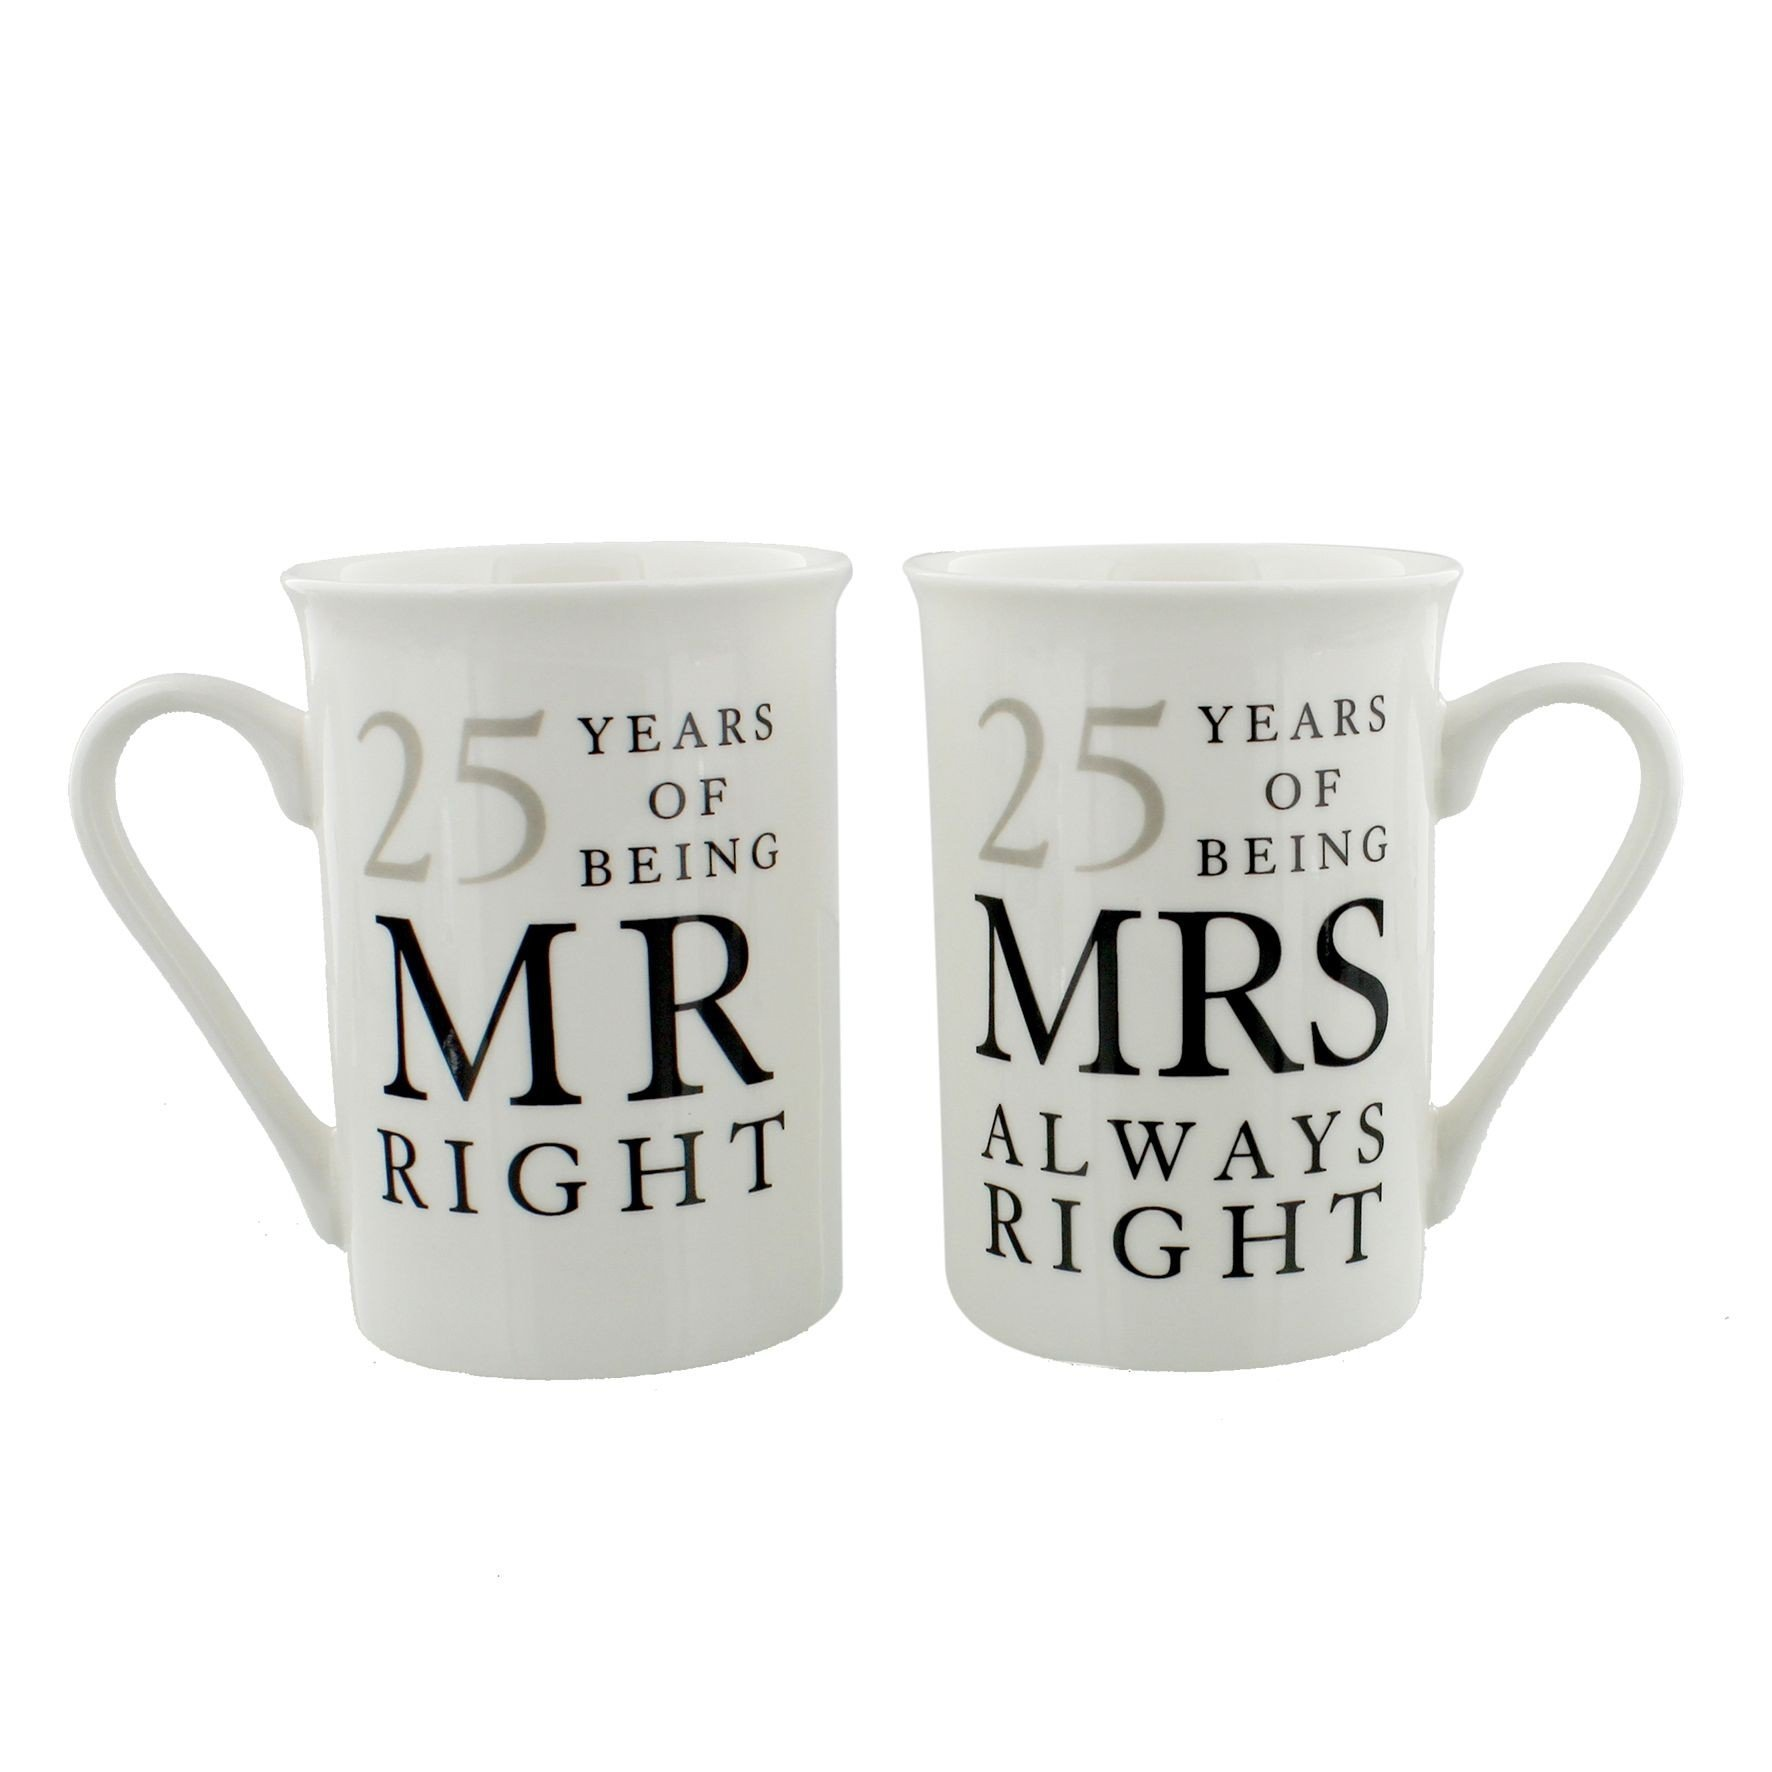 beautiful gift idea for 25th wedding anniversary | wedding gifts